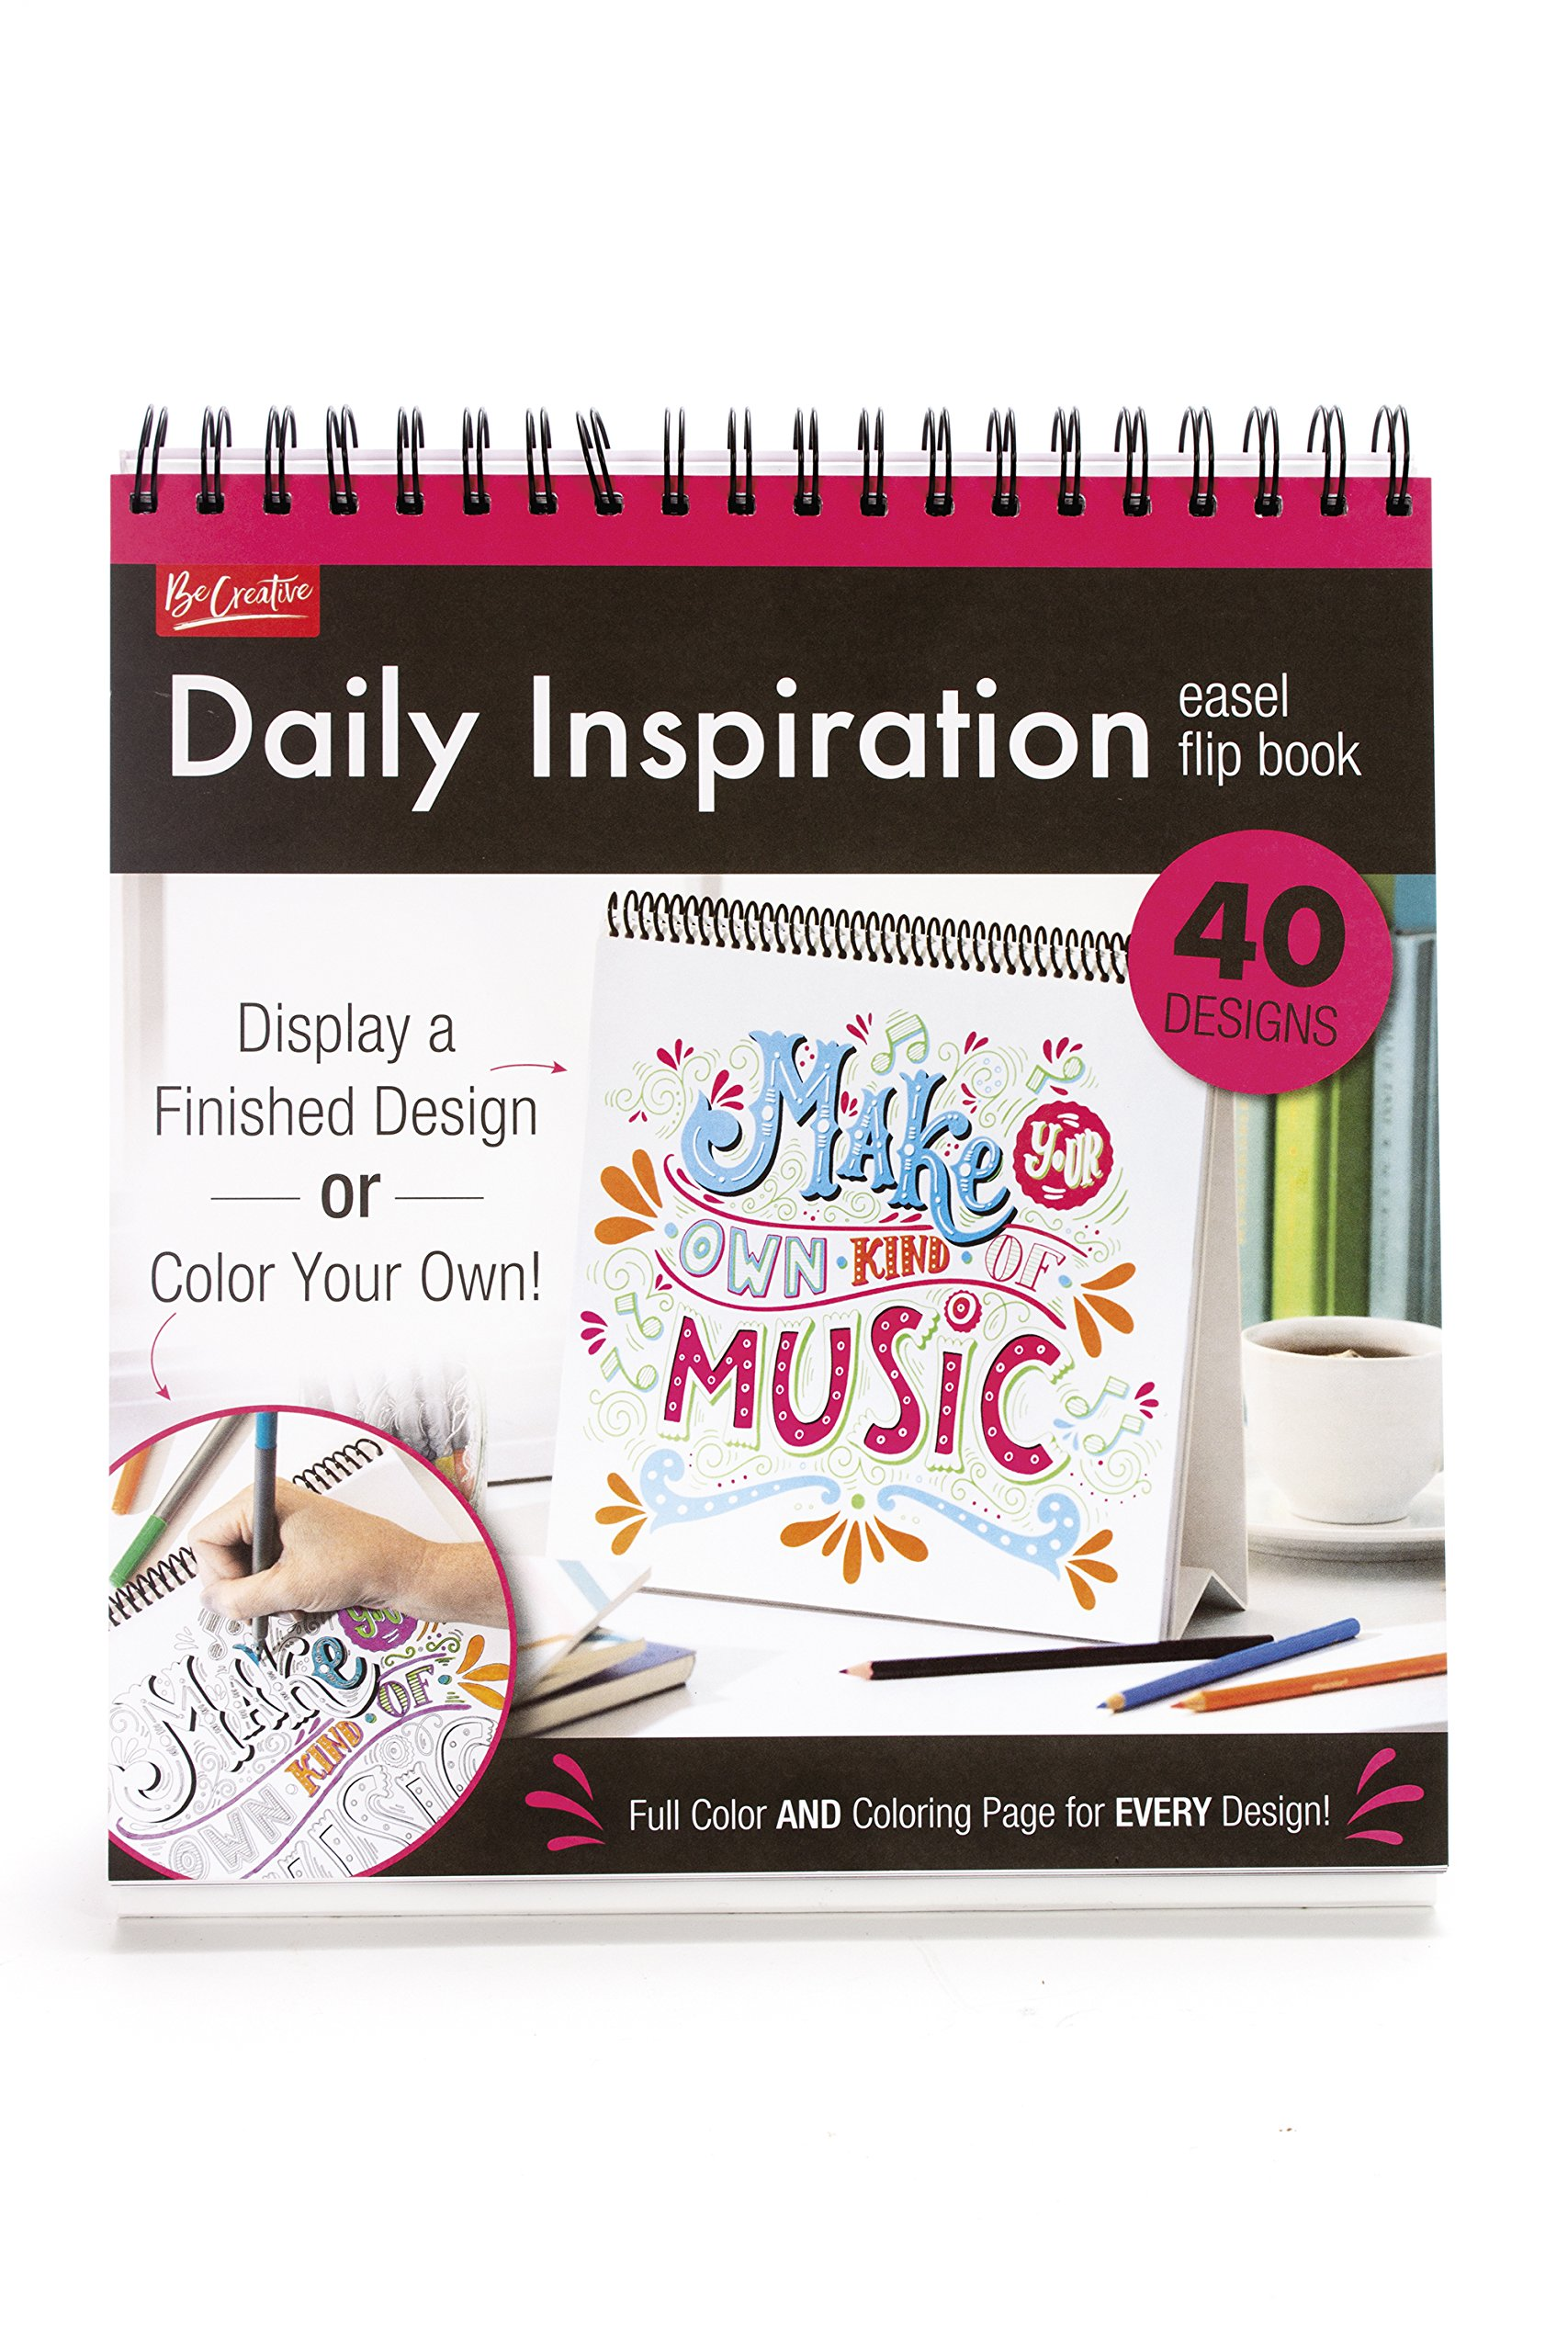 Download Daily Inspiration Easle Flip Book - 40 Designs To Color Or Display - Full Color and Coloring Page for Every Design! pdf epub